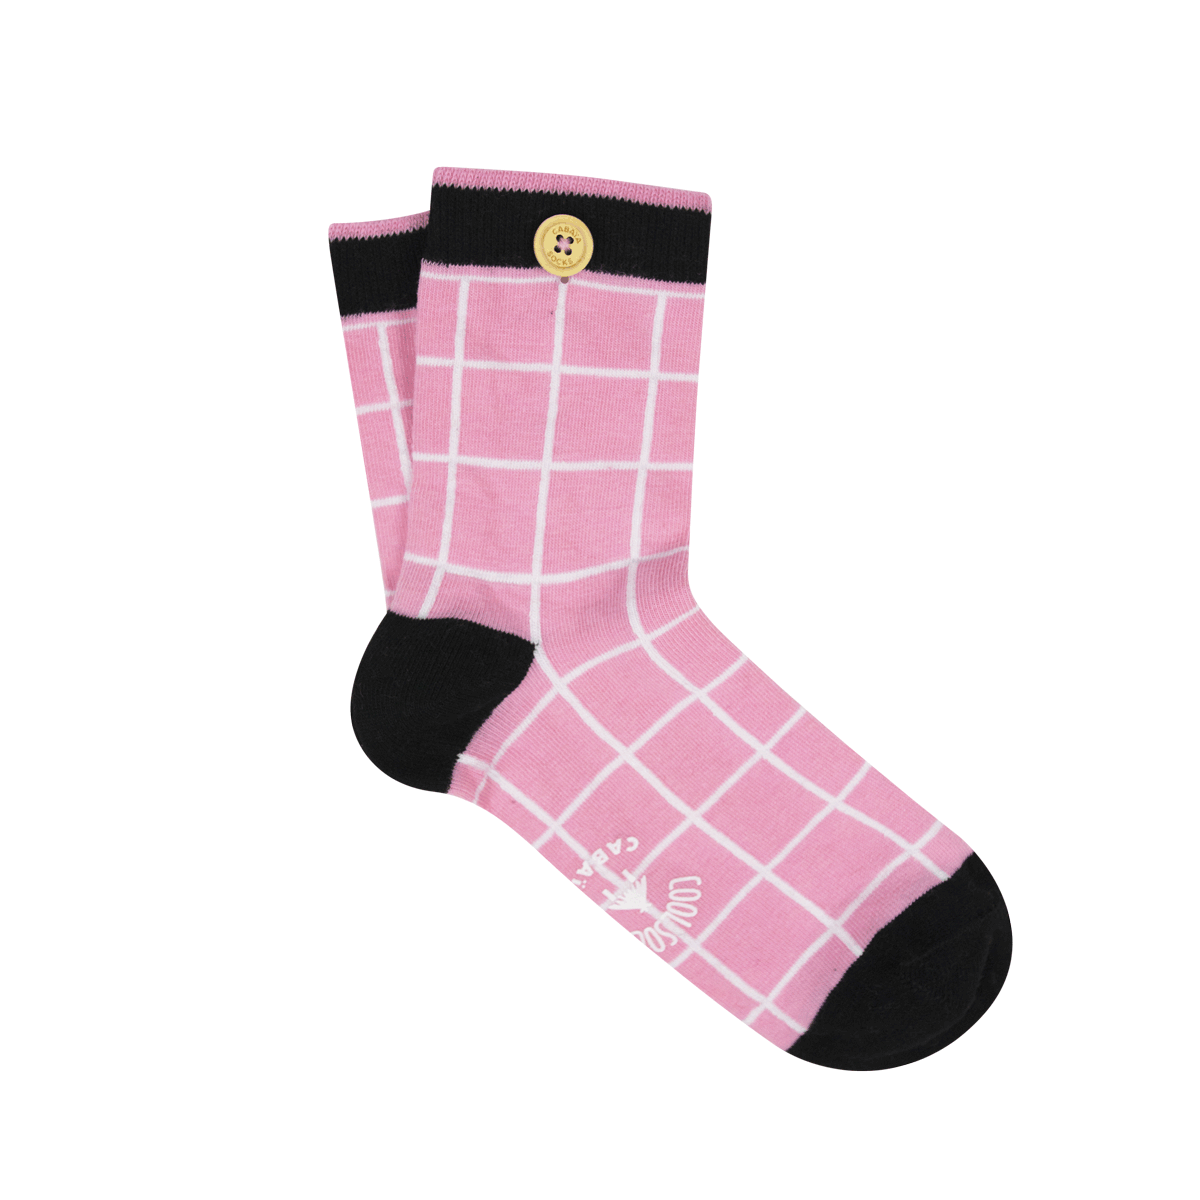 unloosable-socks-button-women-36-41-socks20-celi-pin